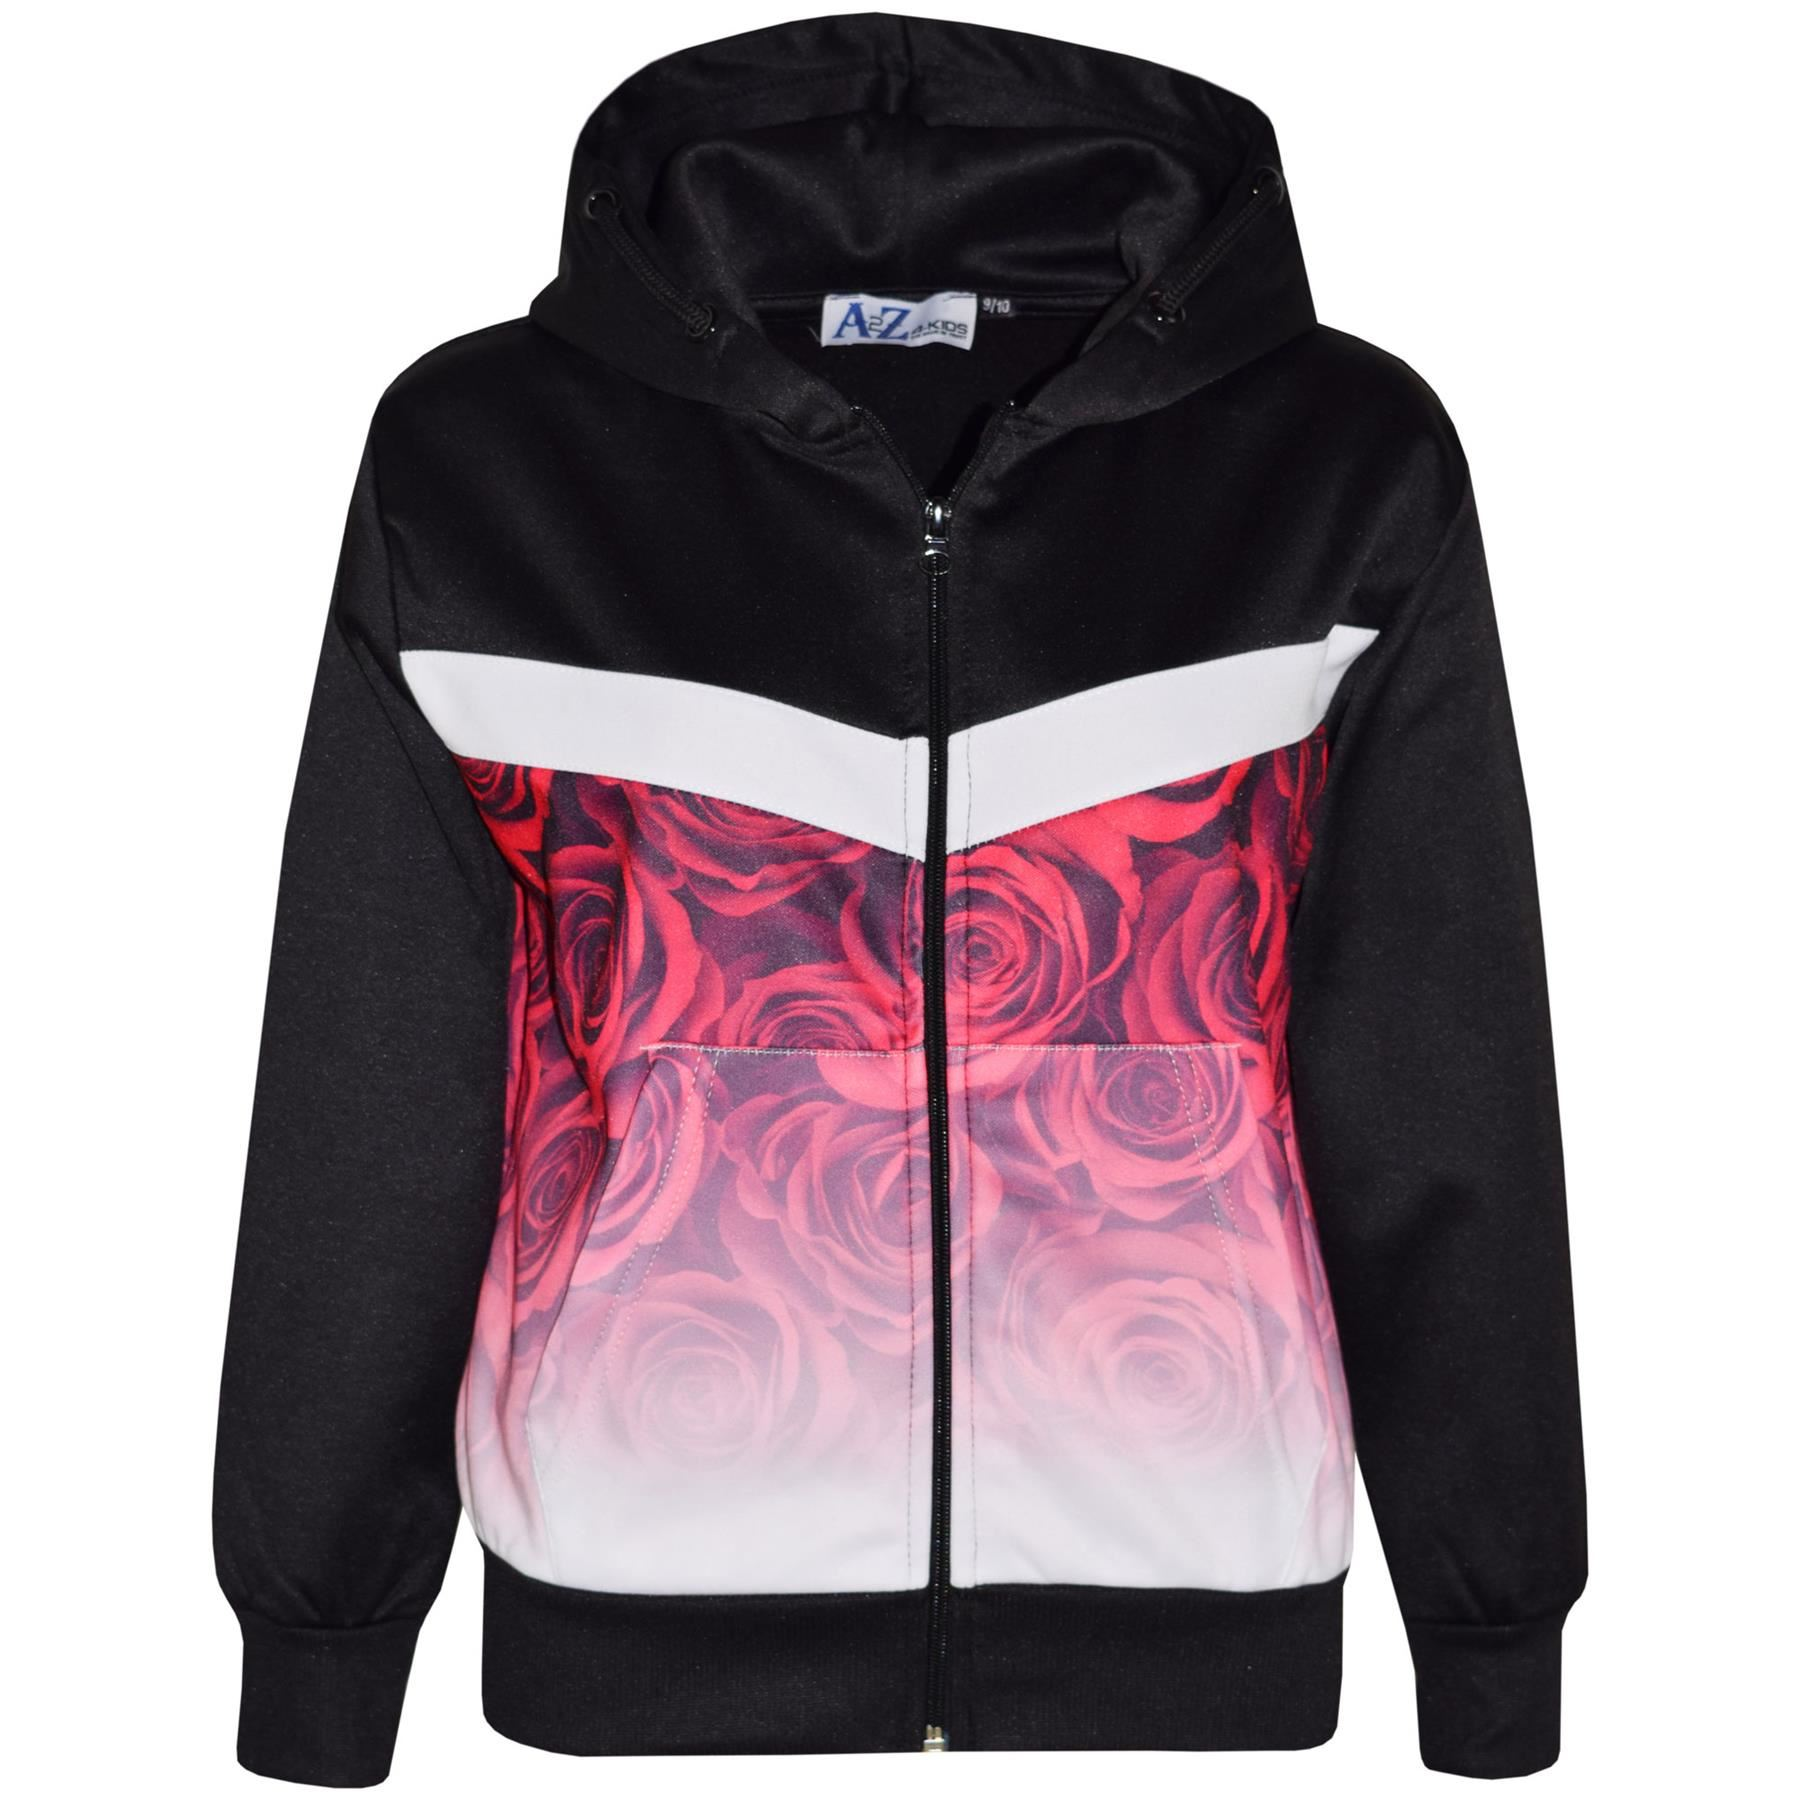 Kids Boys Girls Tracksuit 3D Red Roses Fade Two Tone Hooded Top Bottom Jog Suits